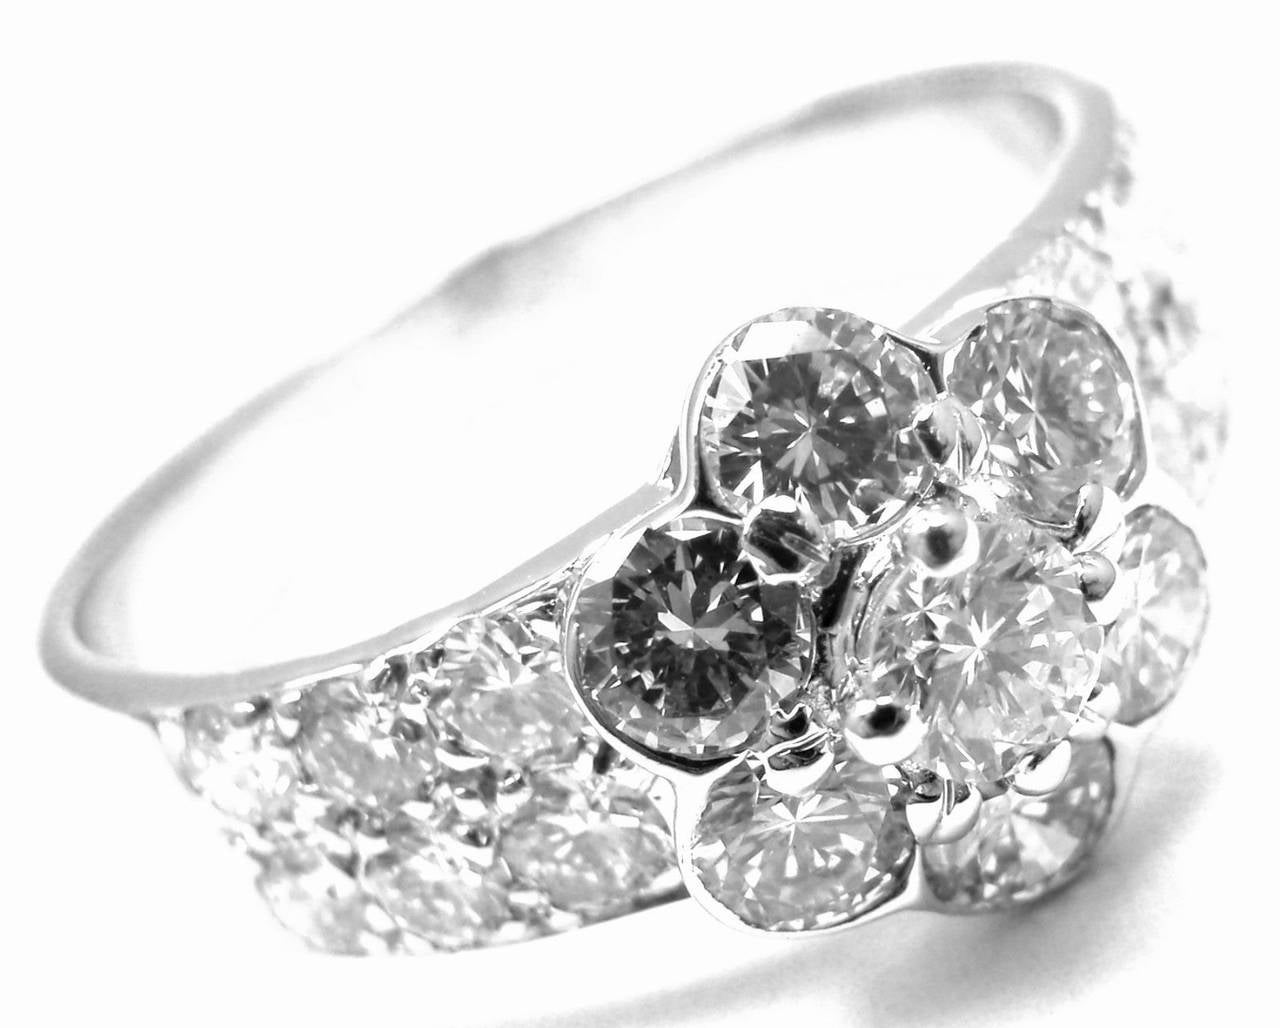 18k White Gold Diamond Diamond Fleurette Flower Ring by Van Cleef & Arpels. With 19 round brilliant cut diamond VS1 clarity, G color total weight 1.14ct  Details: Size: 6 Width: 9mm Weight: 3.4 grams Stamped Hallmarks: VCA 750 18k B5790 A25